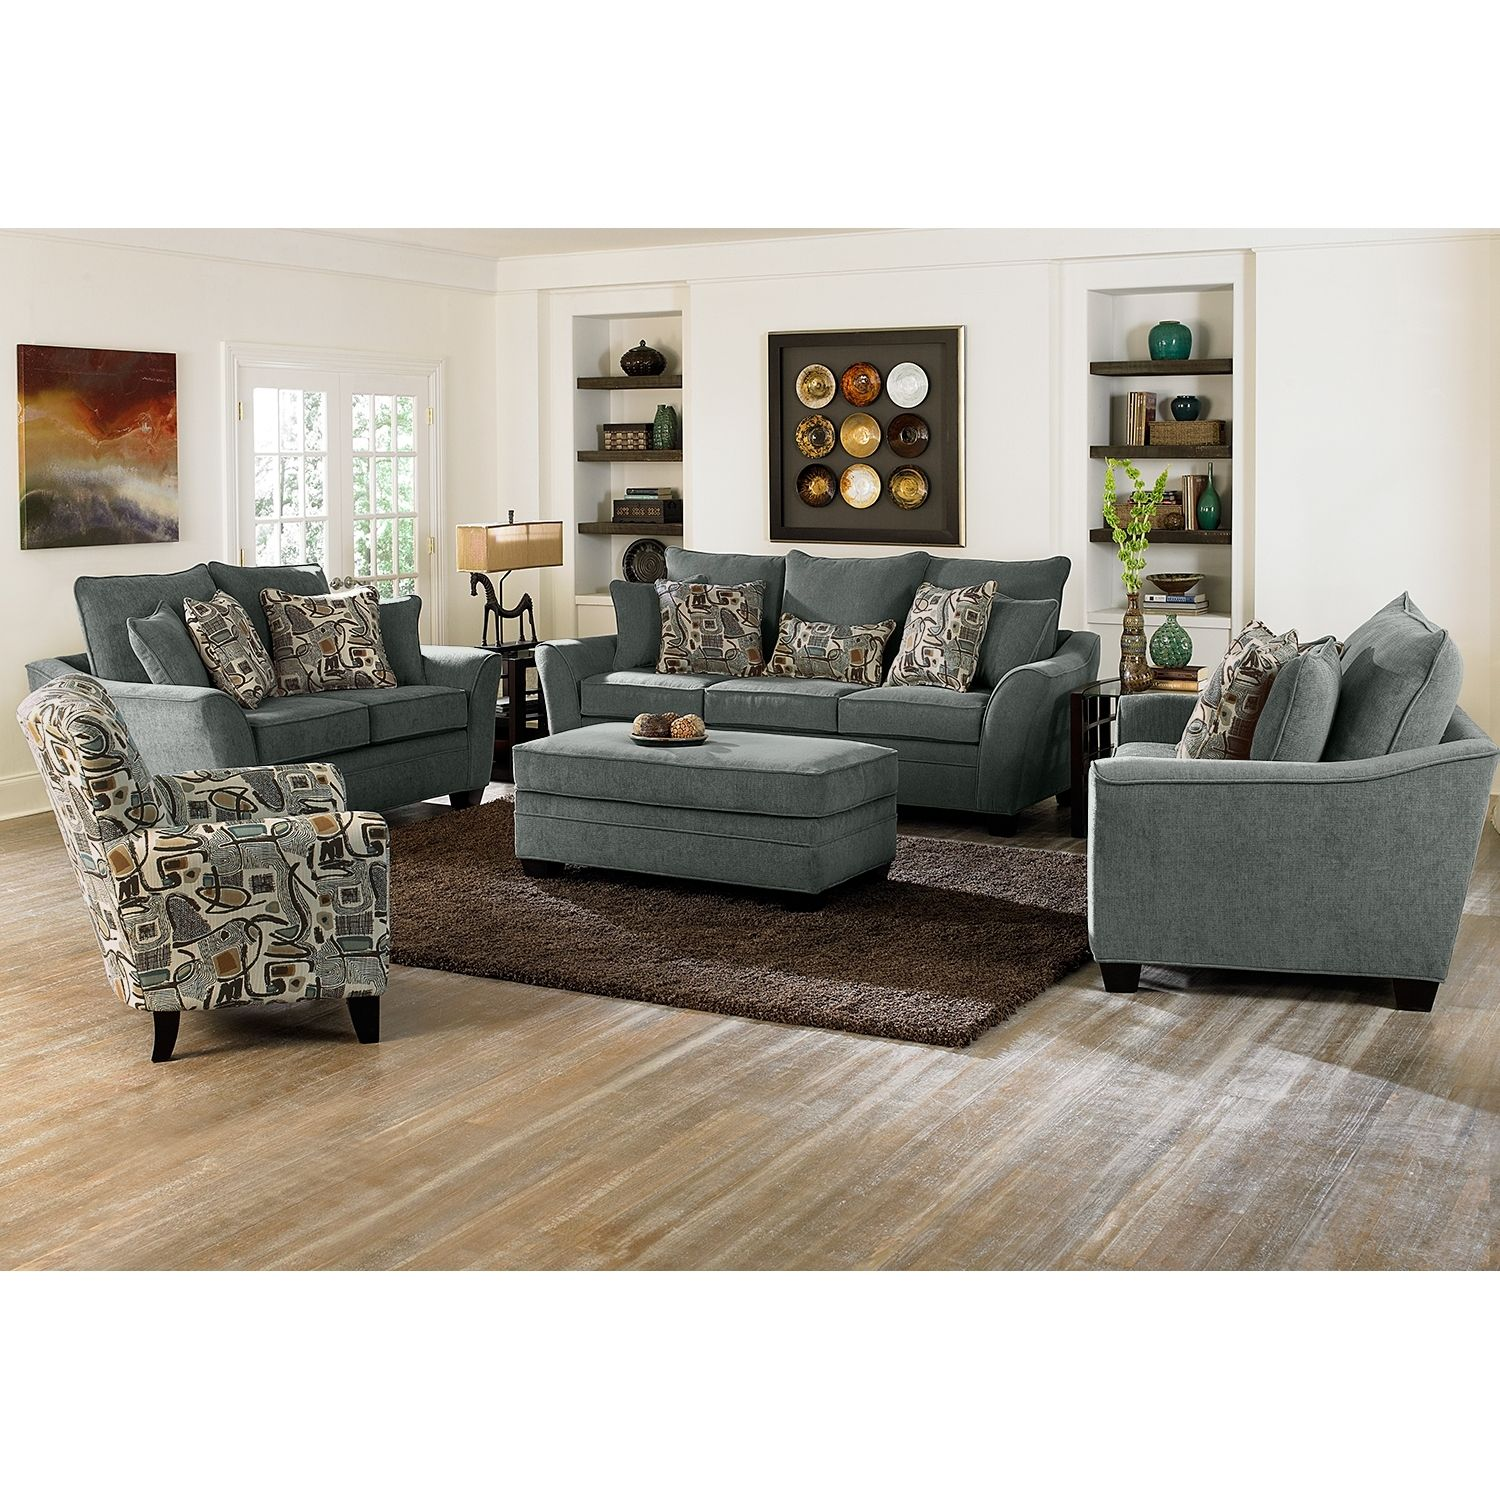 living room set with chair and a half  ottoman in living